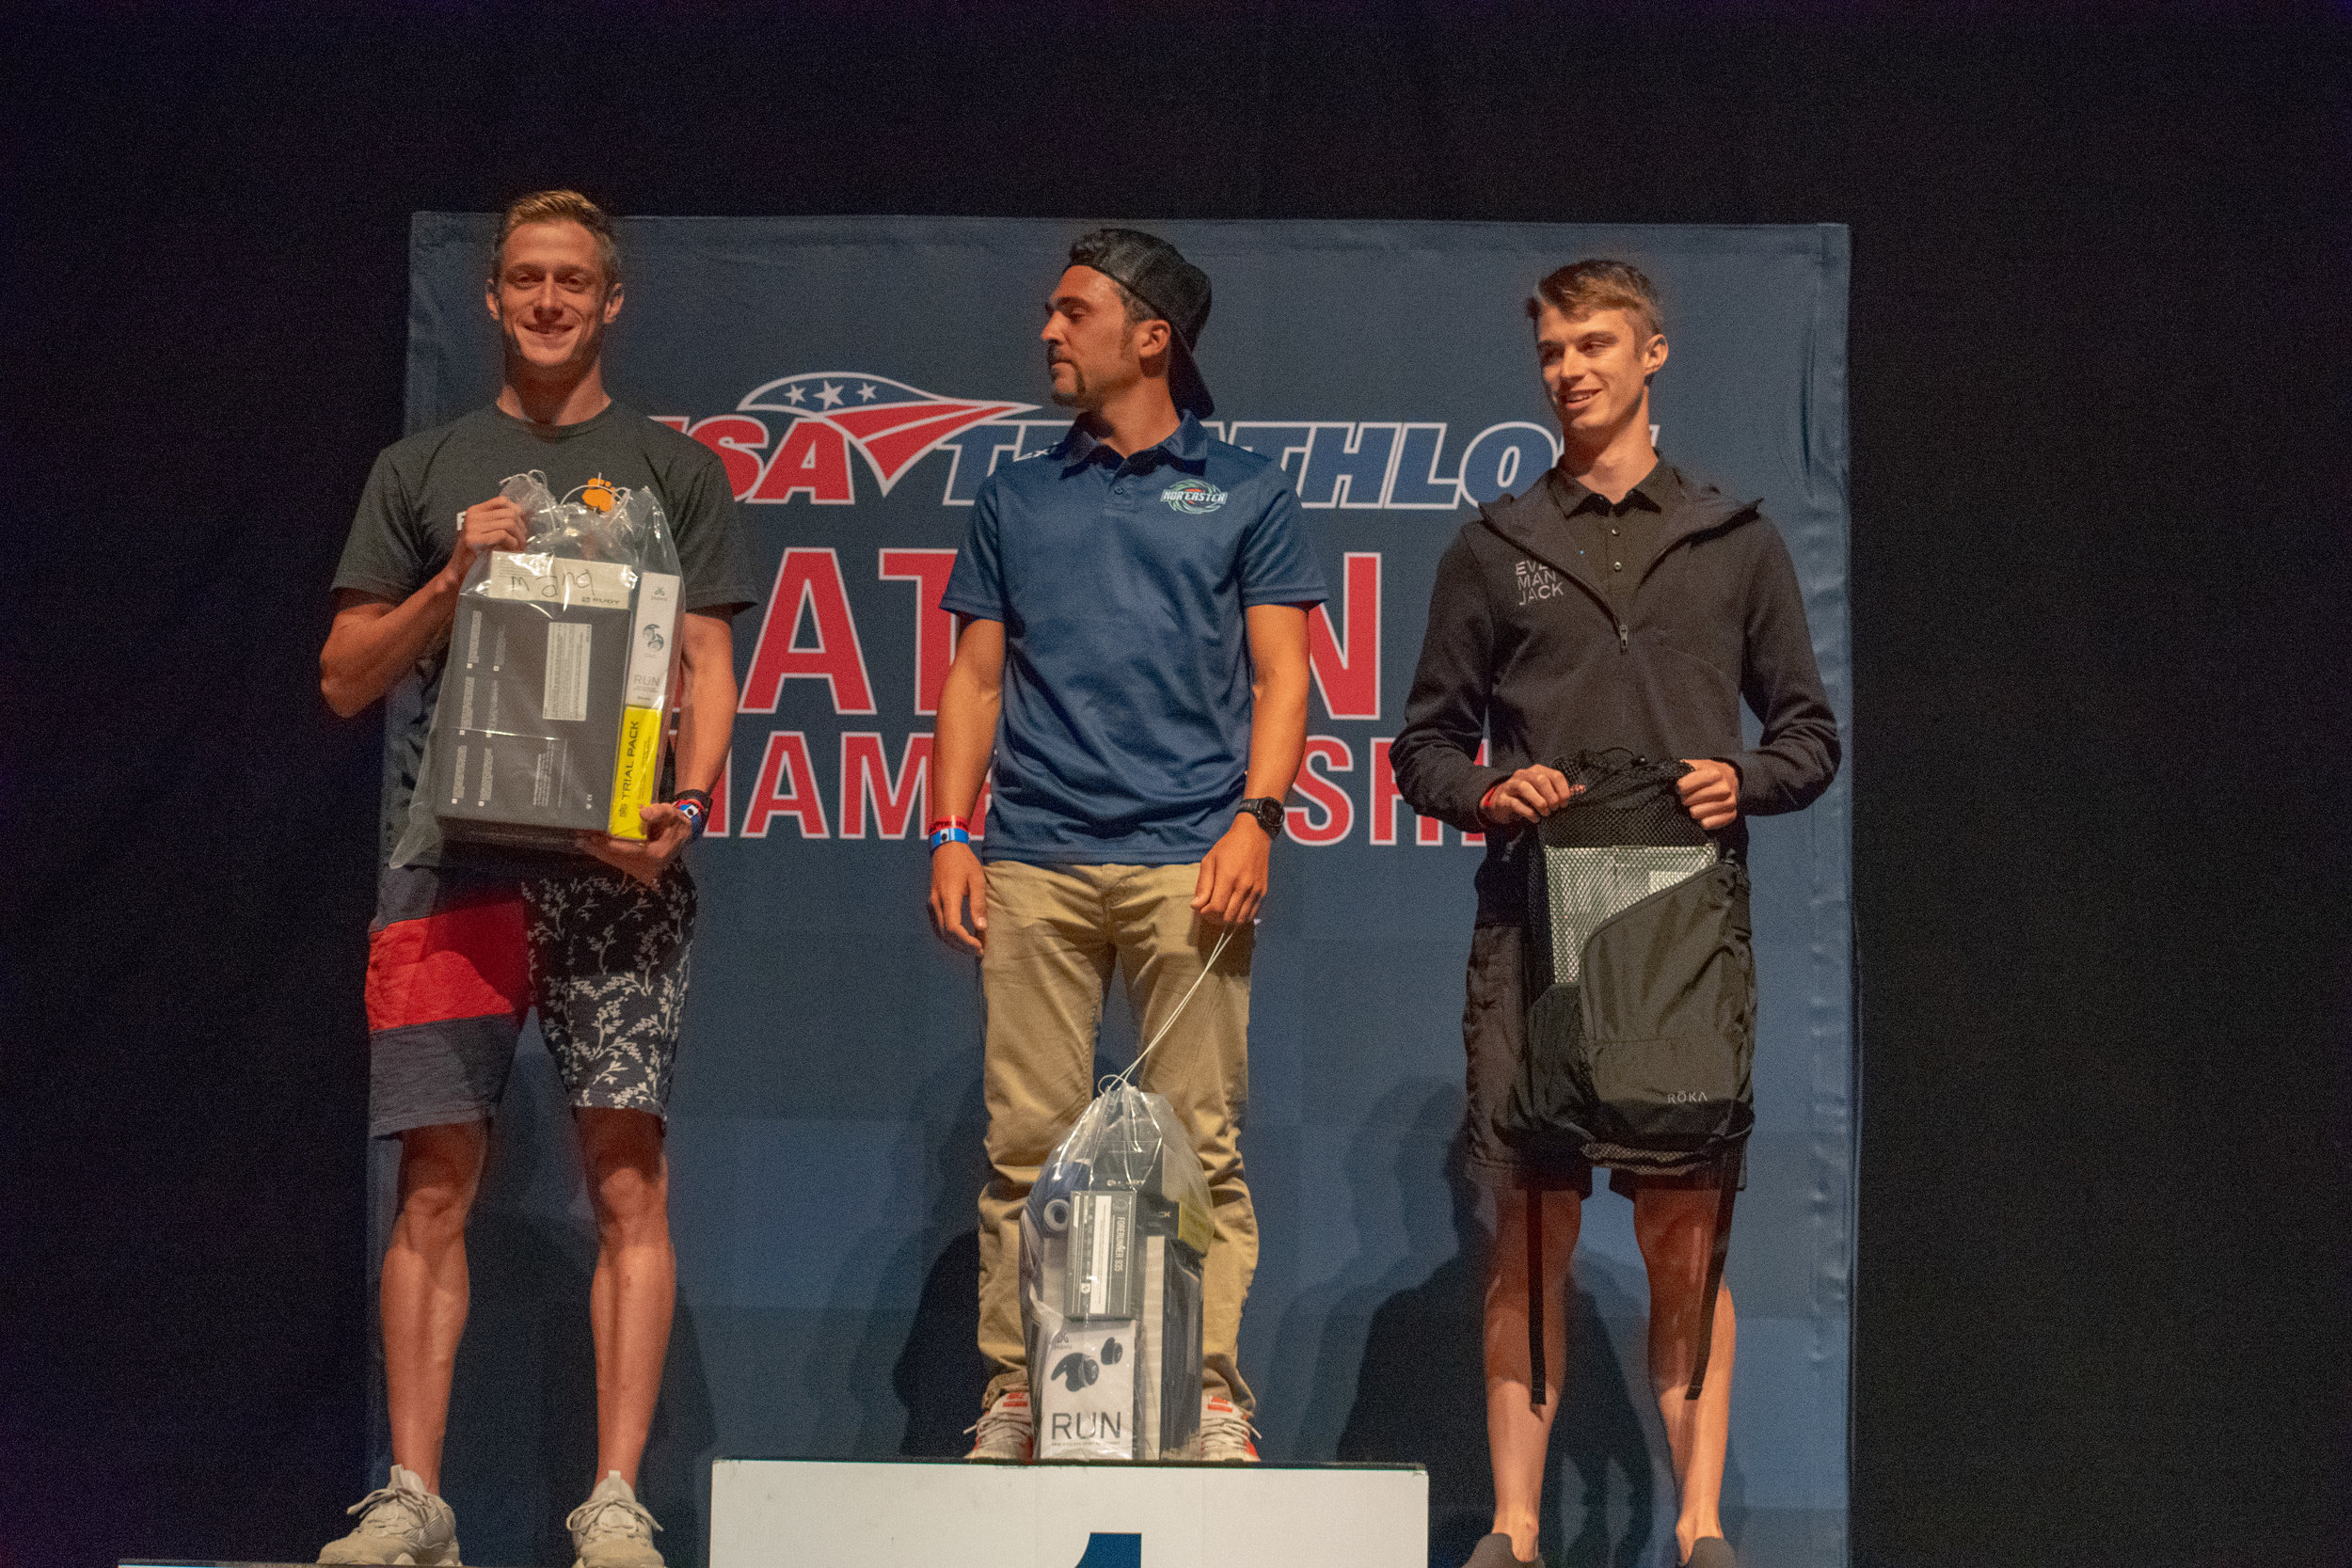 20-24 Age Group SWEEPS the overall podium. Also I am STILL not taller than these two giants (Left: Matthew Murray 2nd / Right: Nick Noone 3rd)